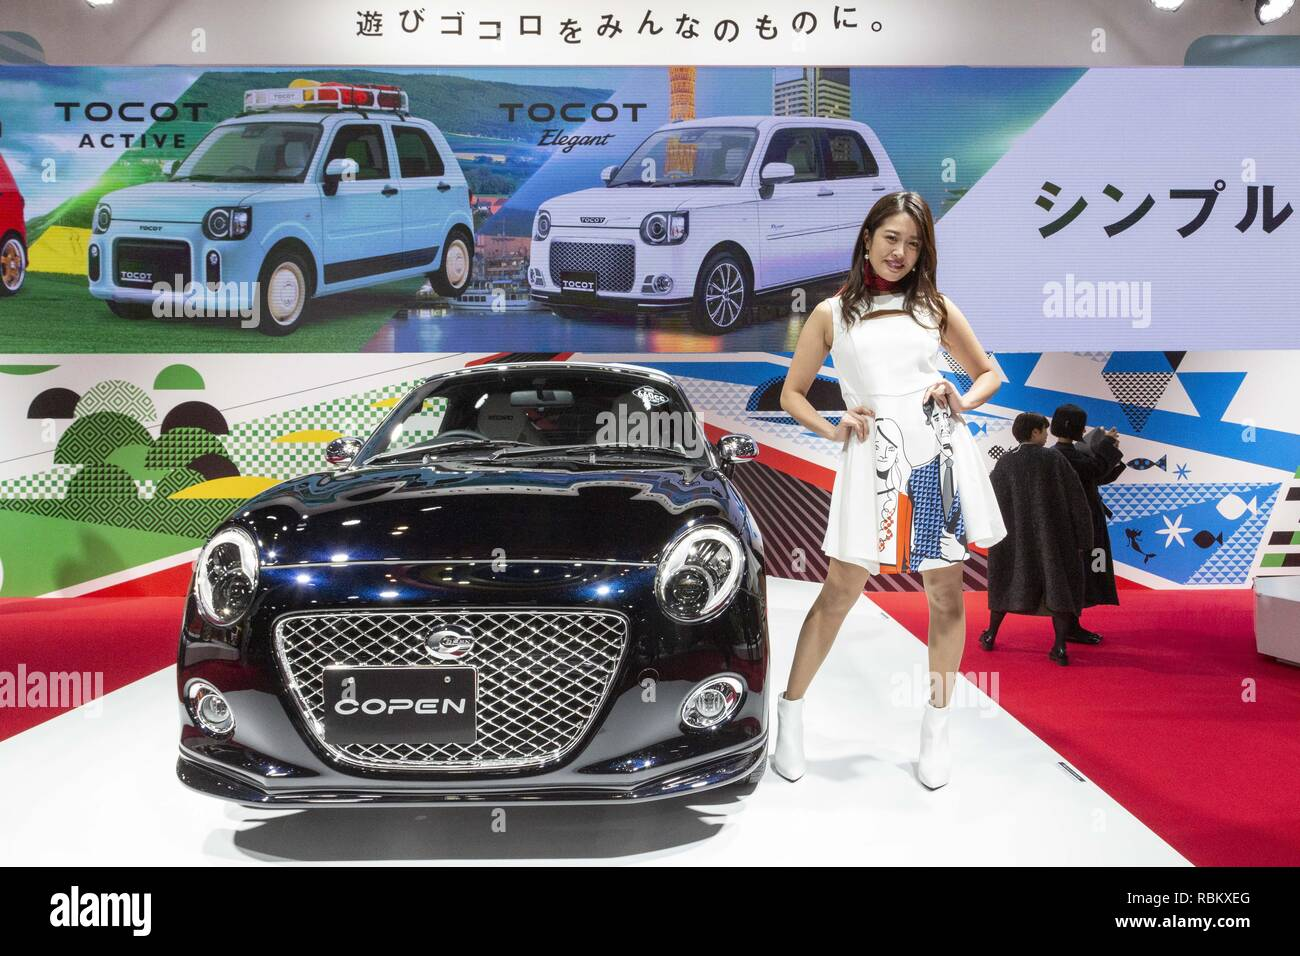 Exhibition Booth Assistant : Chiba japan th jan a booth assistant poses for a